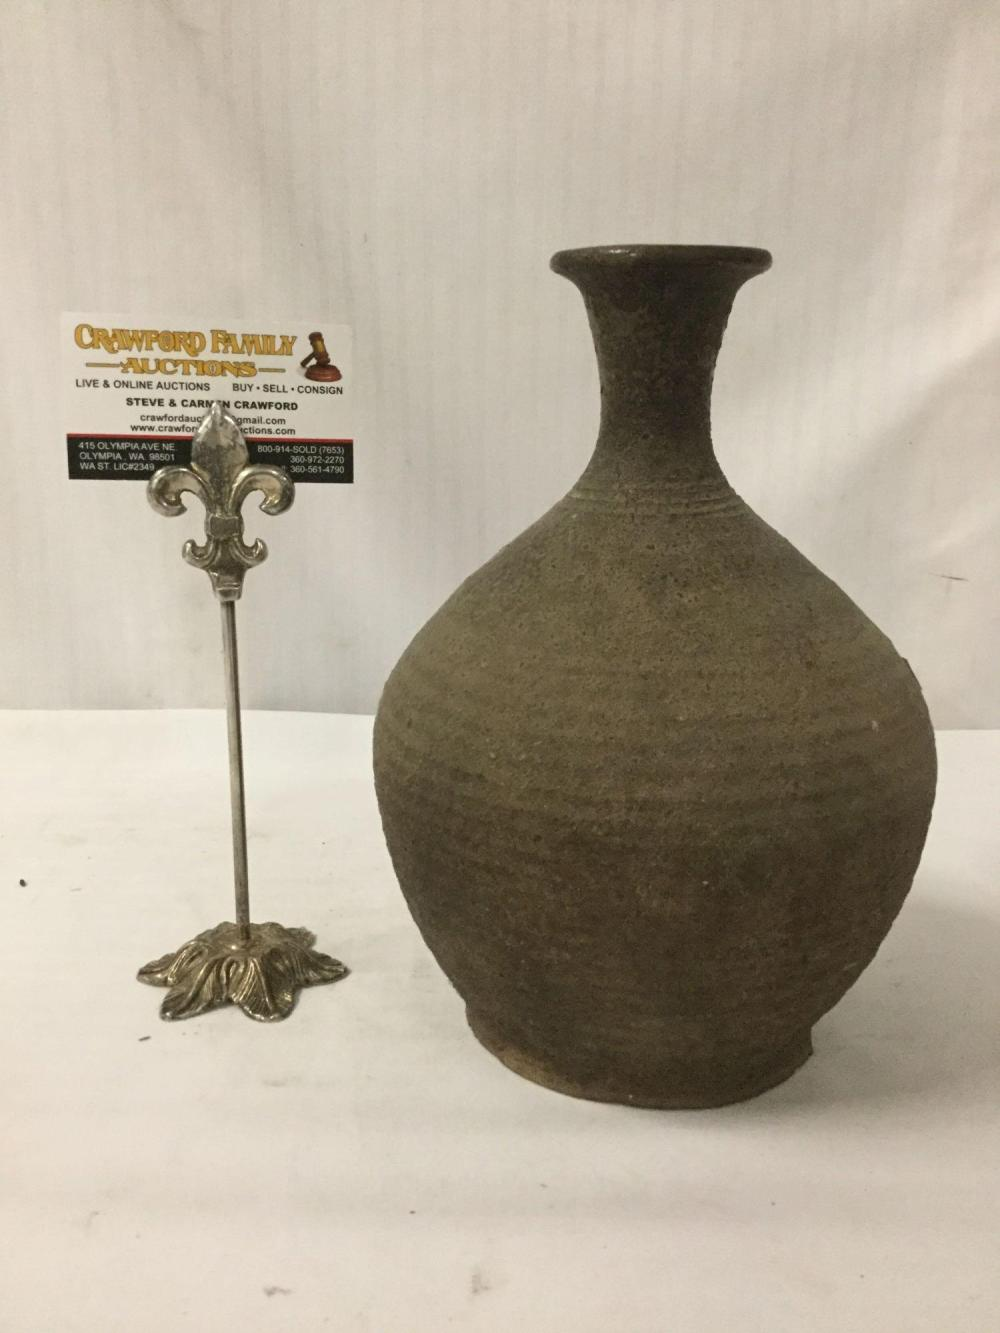 Lot 104: Old antique earthenware vase (from Sankampaeng region in Thailand), with ribbed design